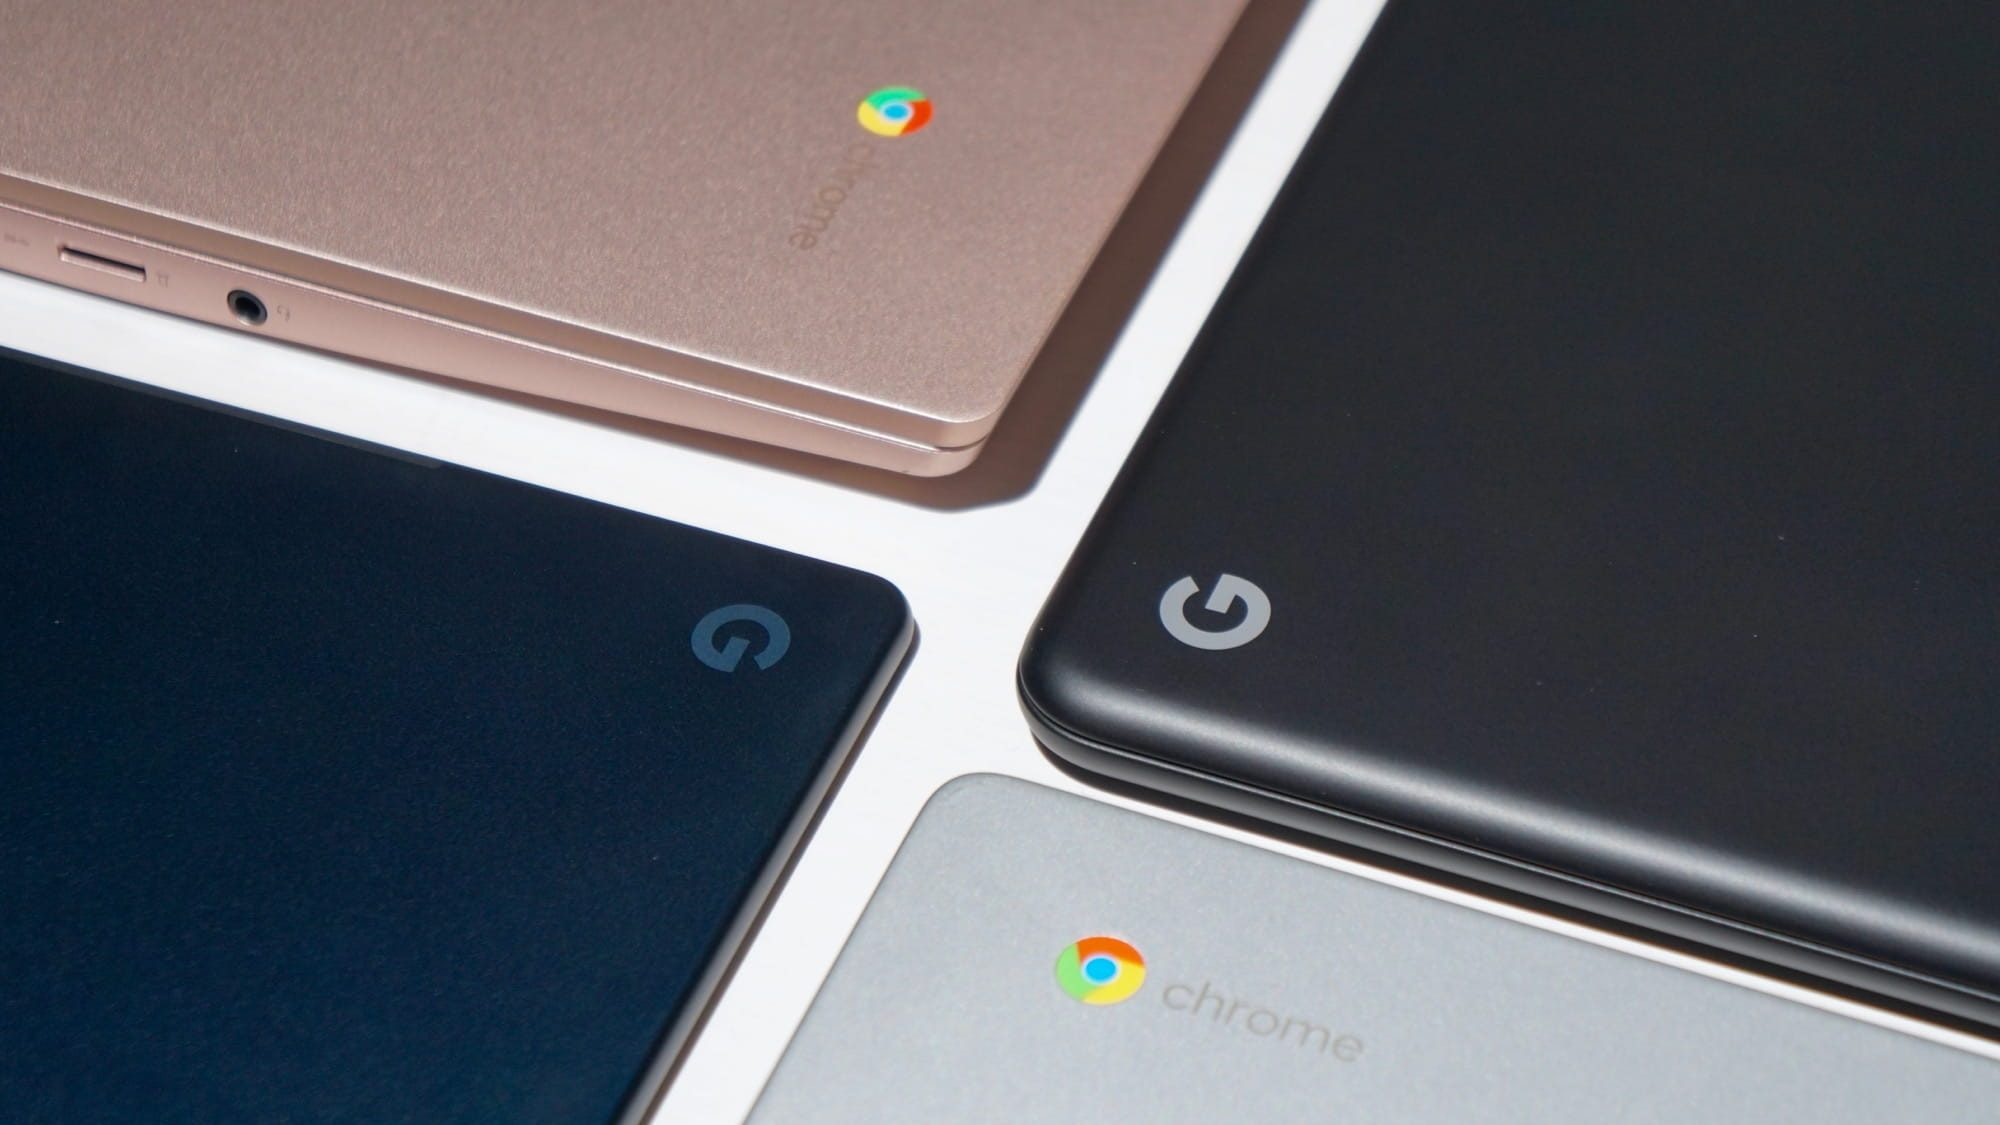 Our picks for the best Chromebooks of 2019 [VIDEO]